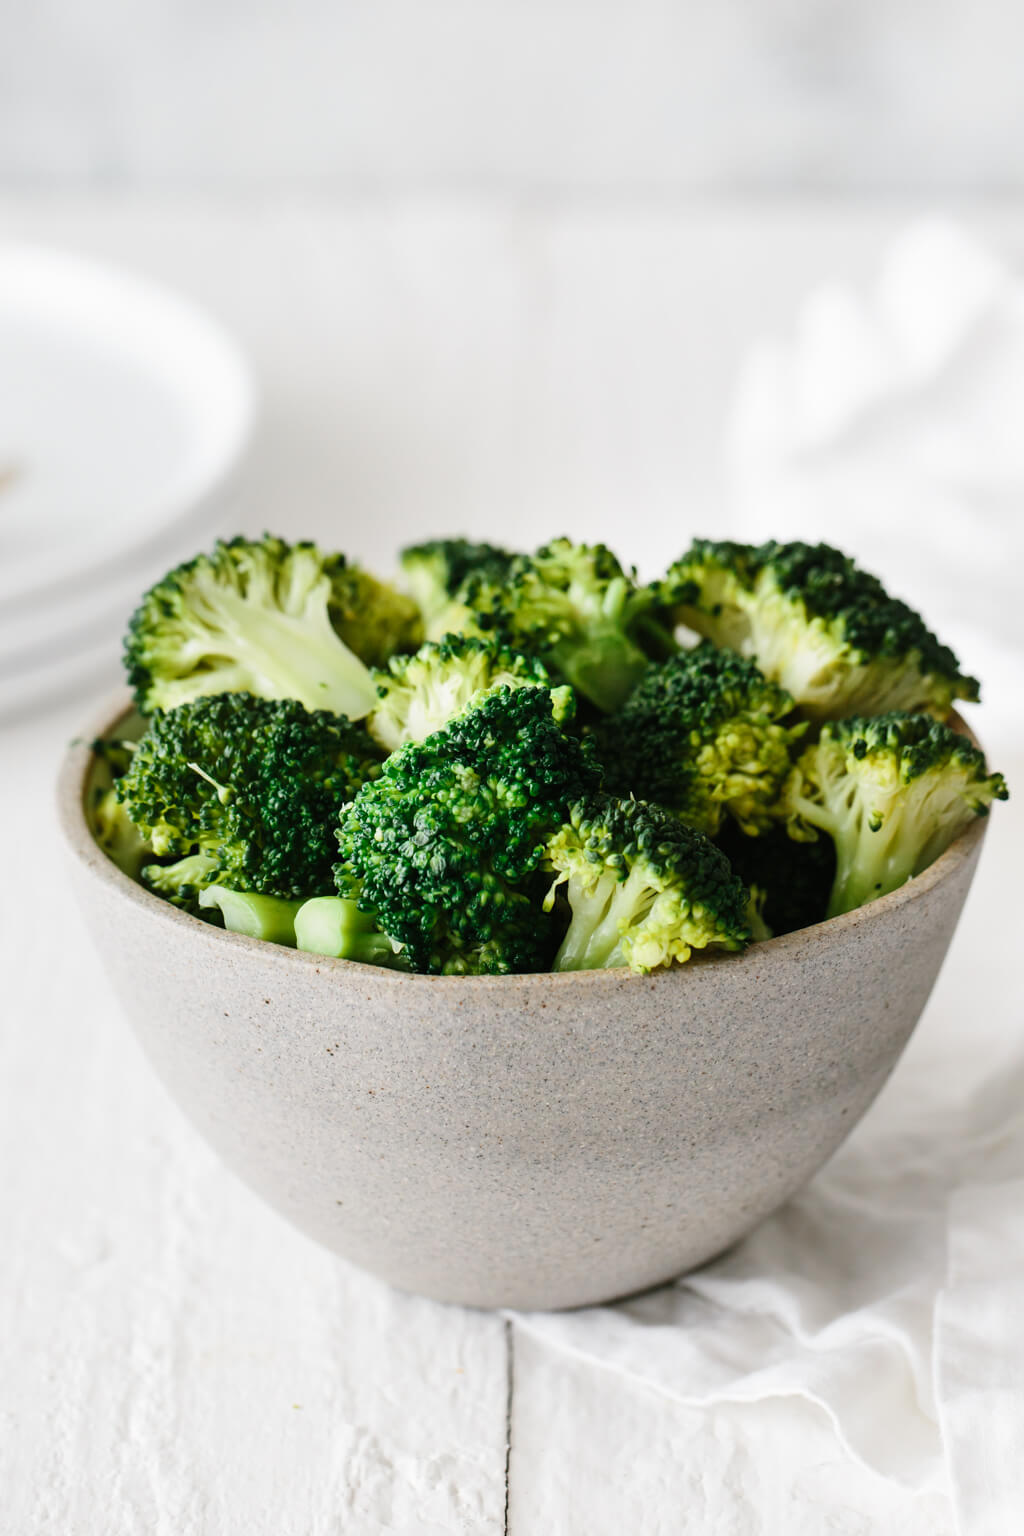 Steamed broccoli in a grey bowl on a white background.